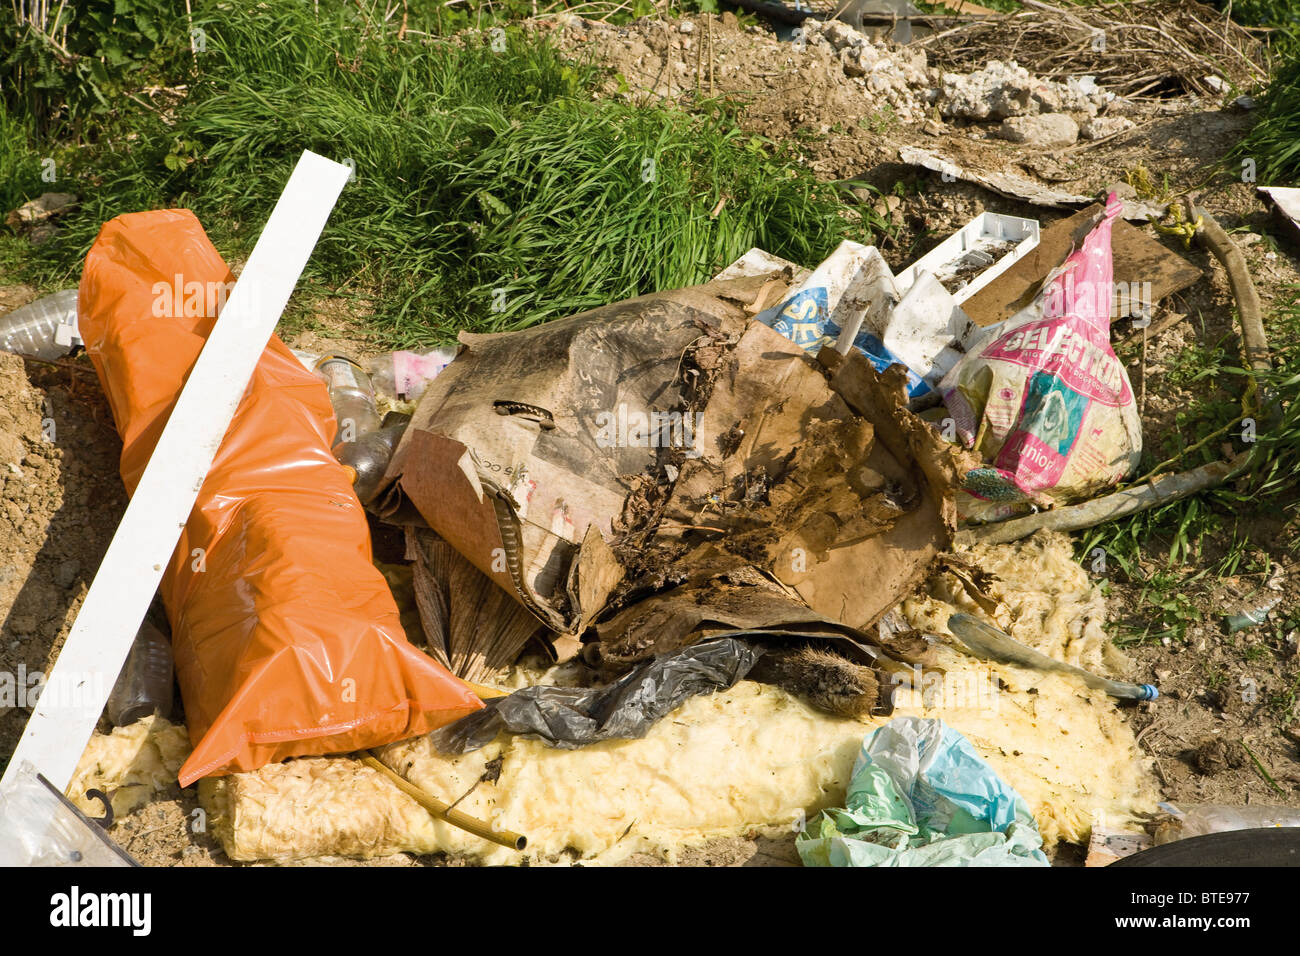 Garbage piled up outdoors - Stock Image